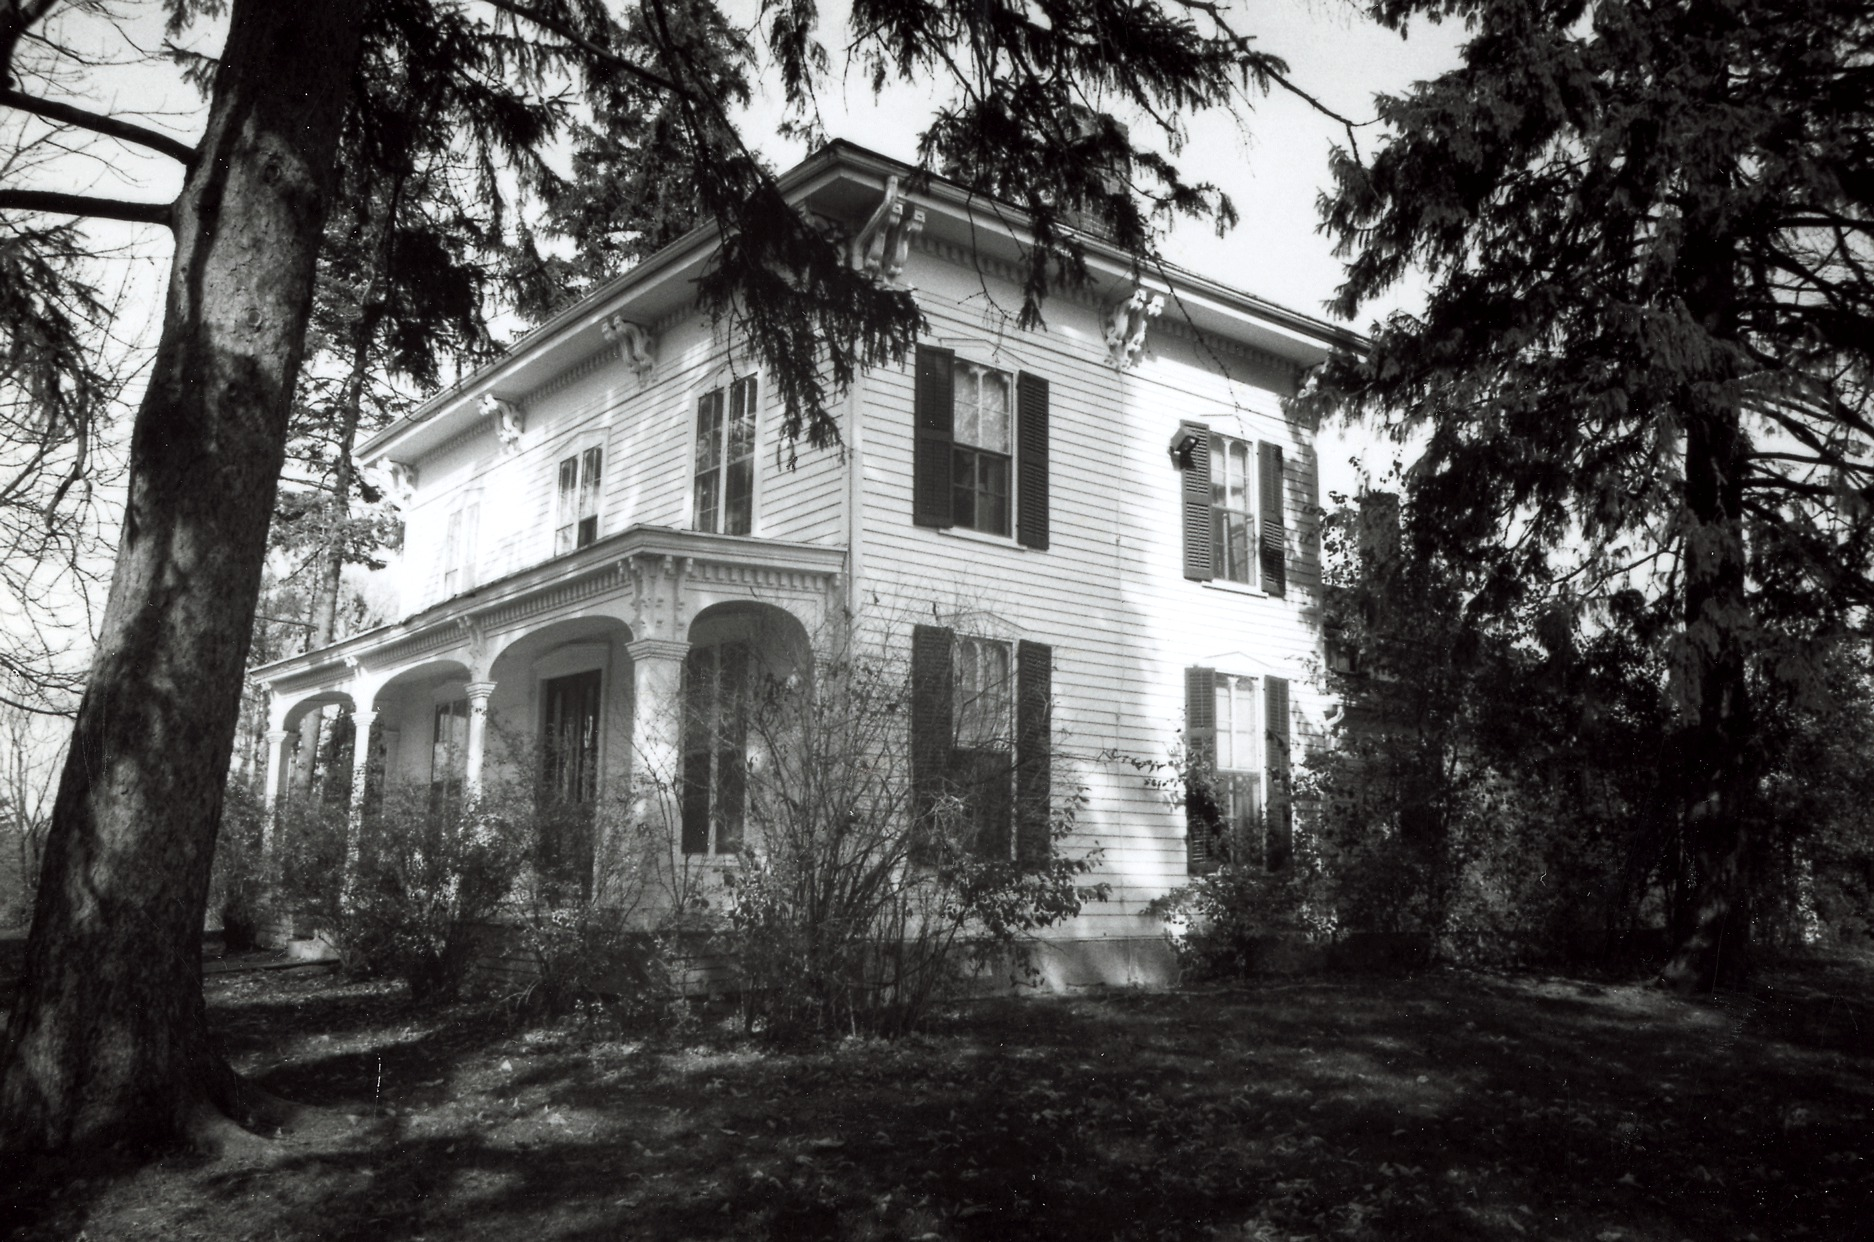 Bell-Spaulding House (Tuomy House), 1854 image